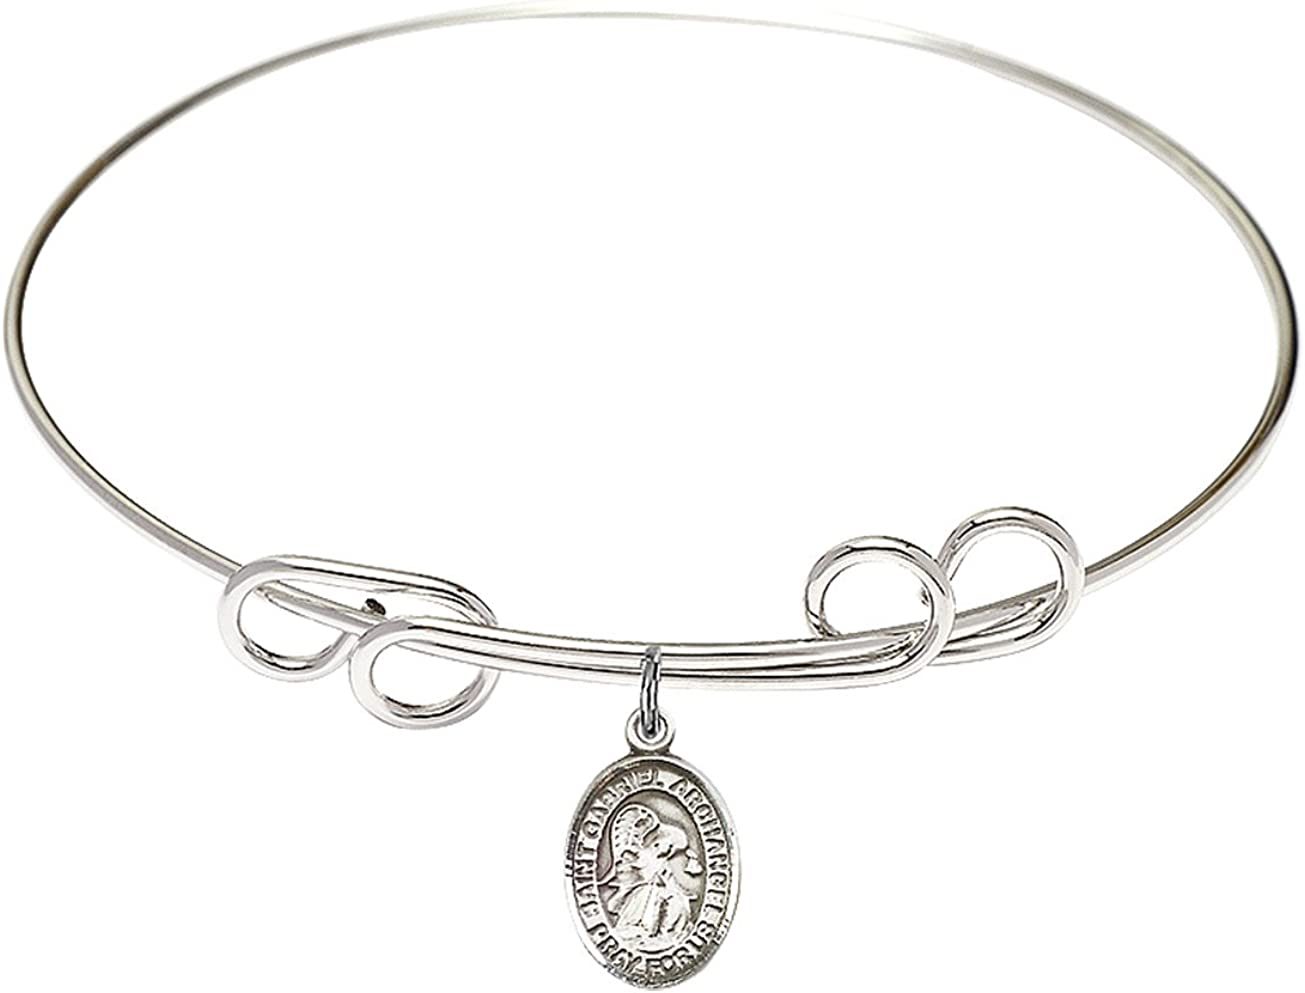 DiamondJewelryNY Double Loop Bangle Bracelet with a St Gabriel The Archangel Charm.